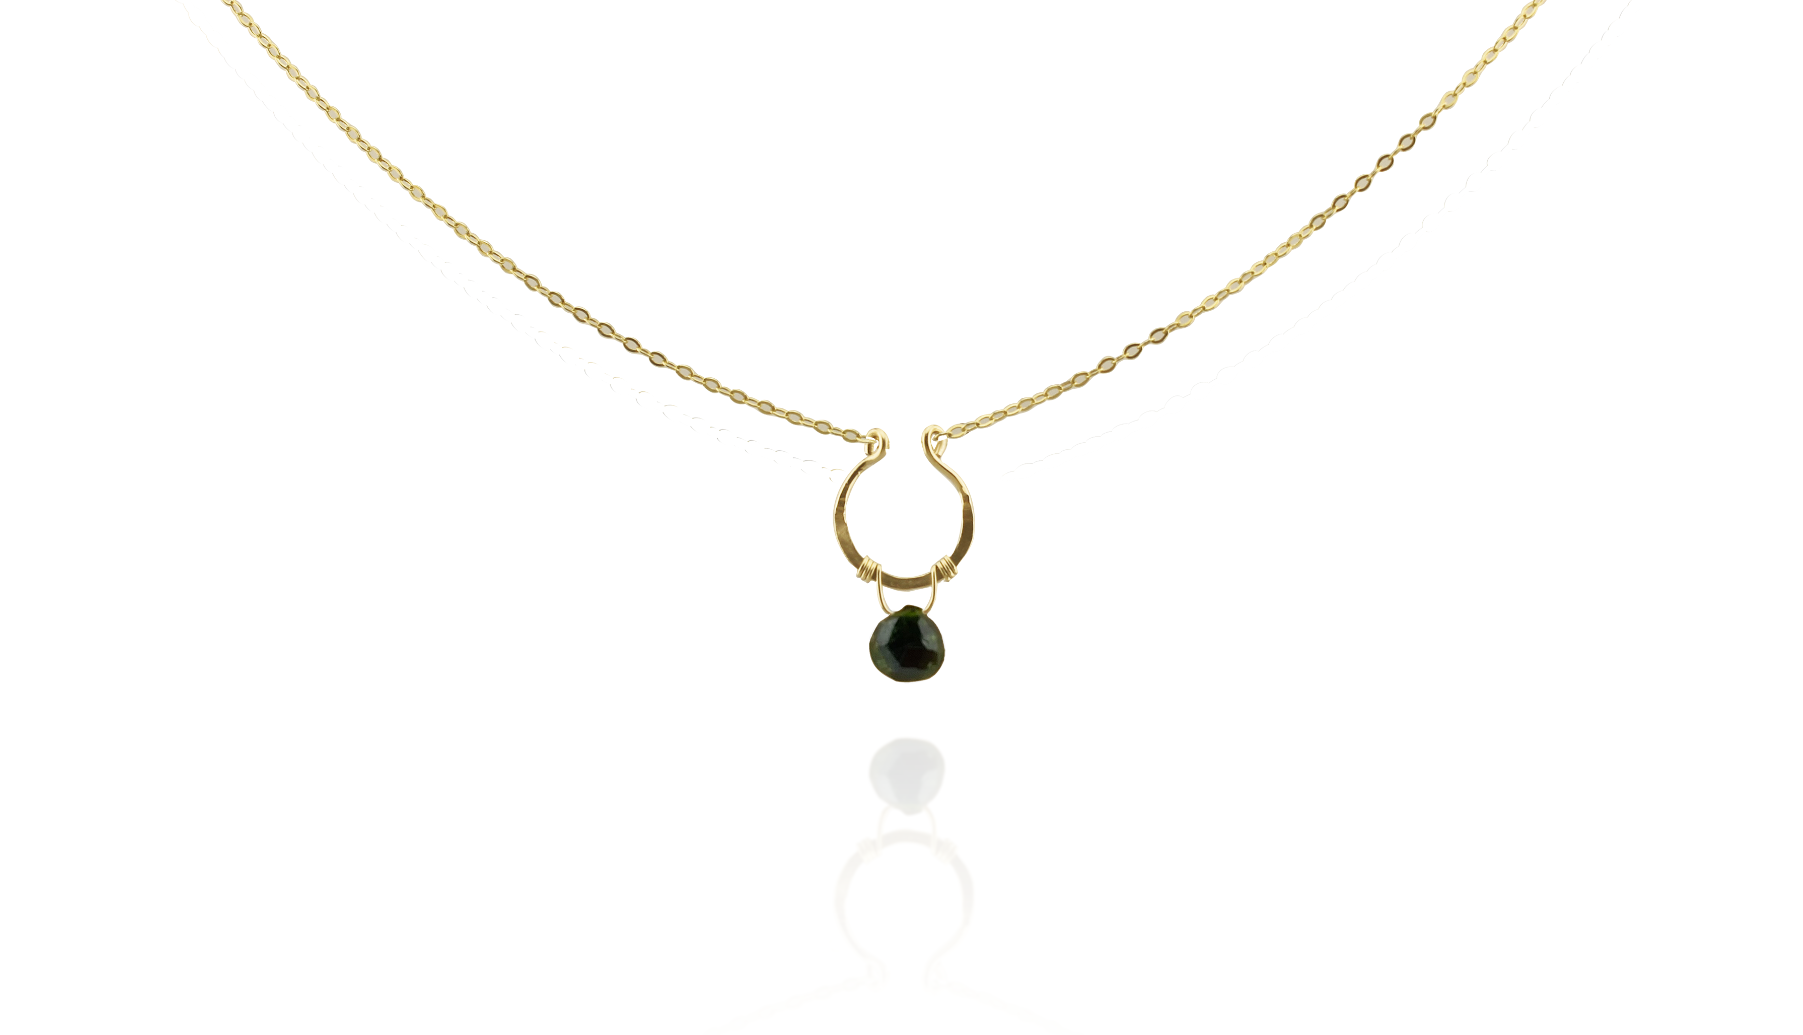 Green Tourmaline U Necklace